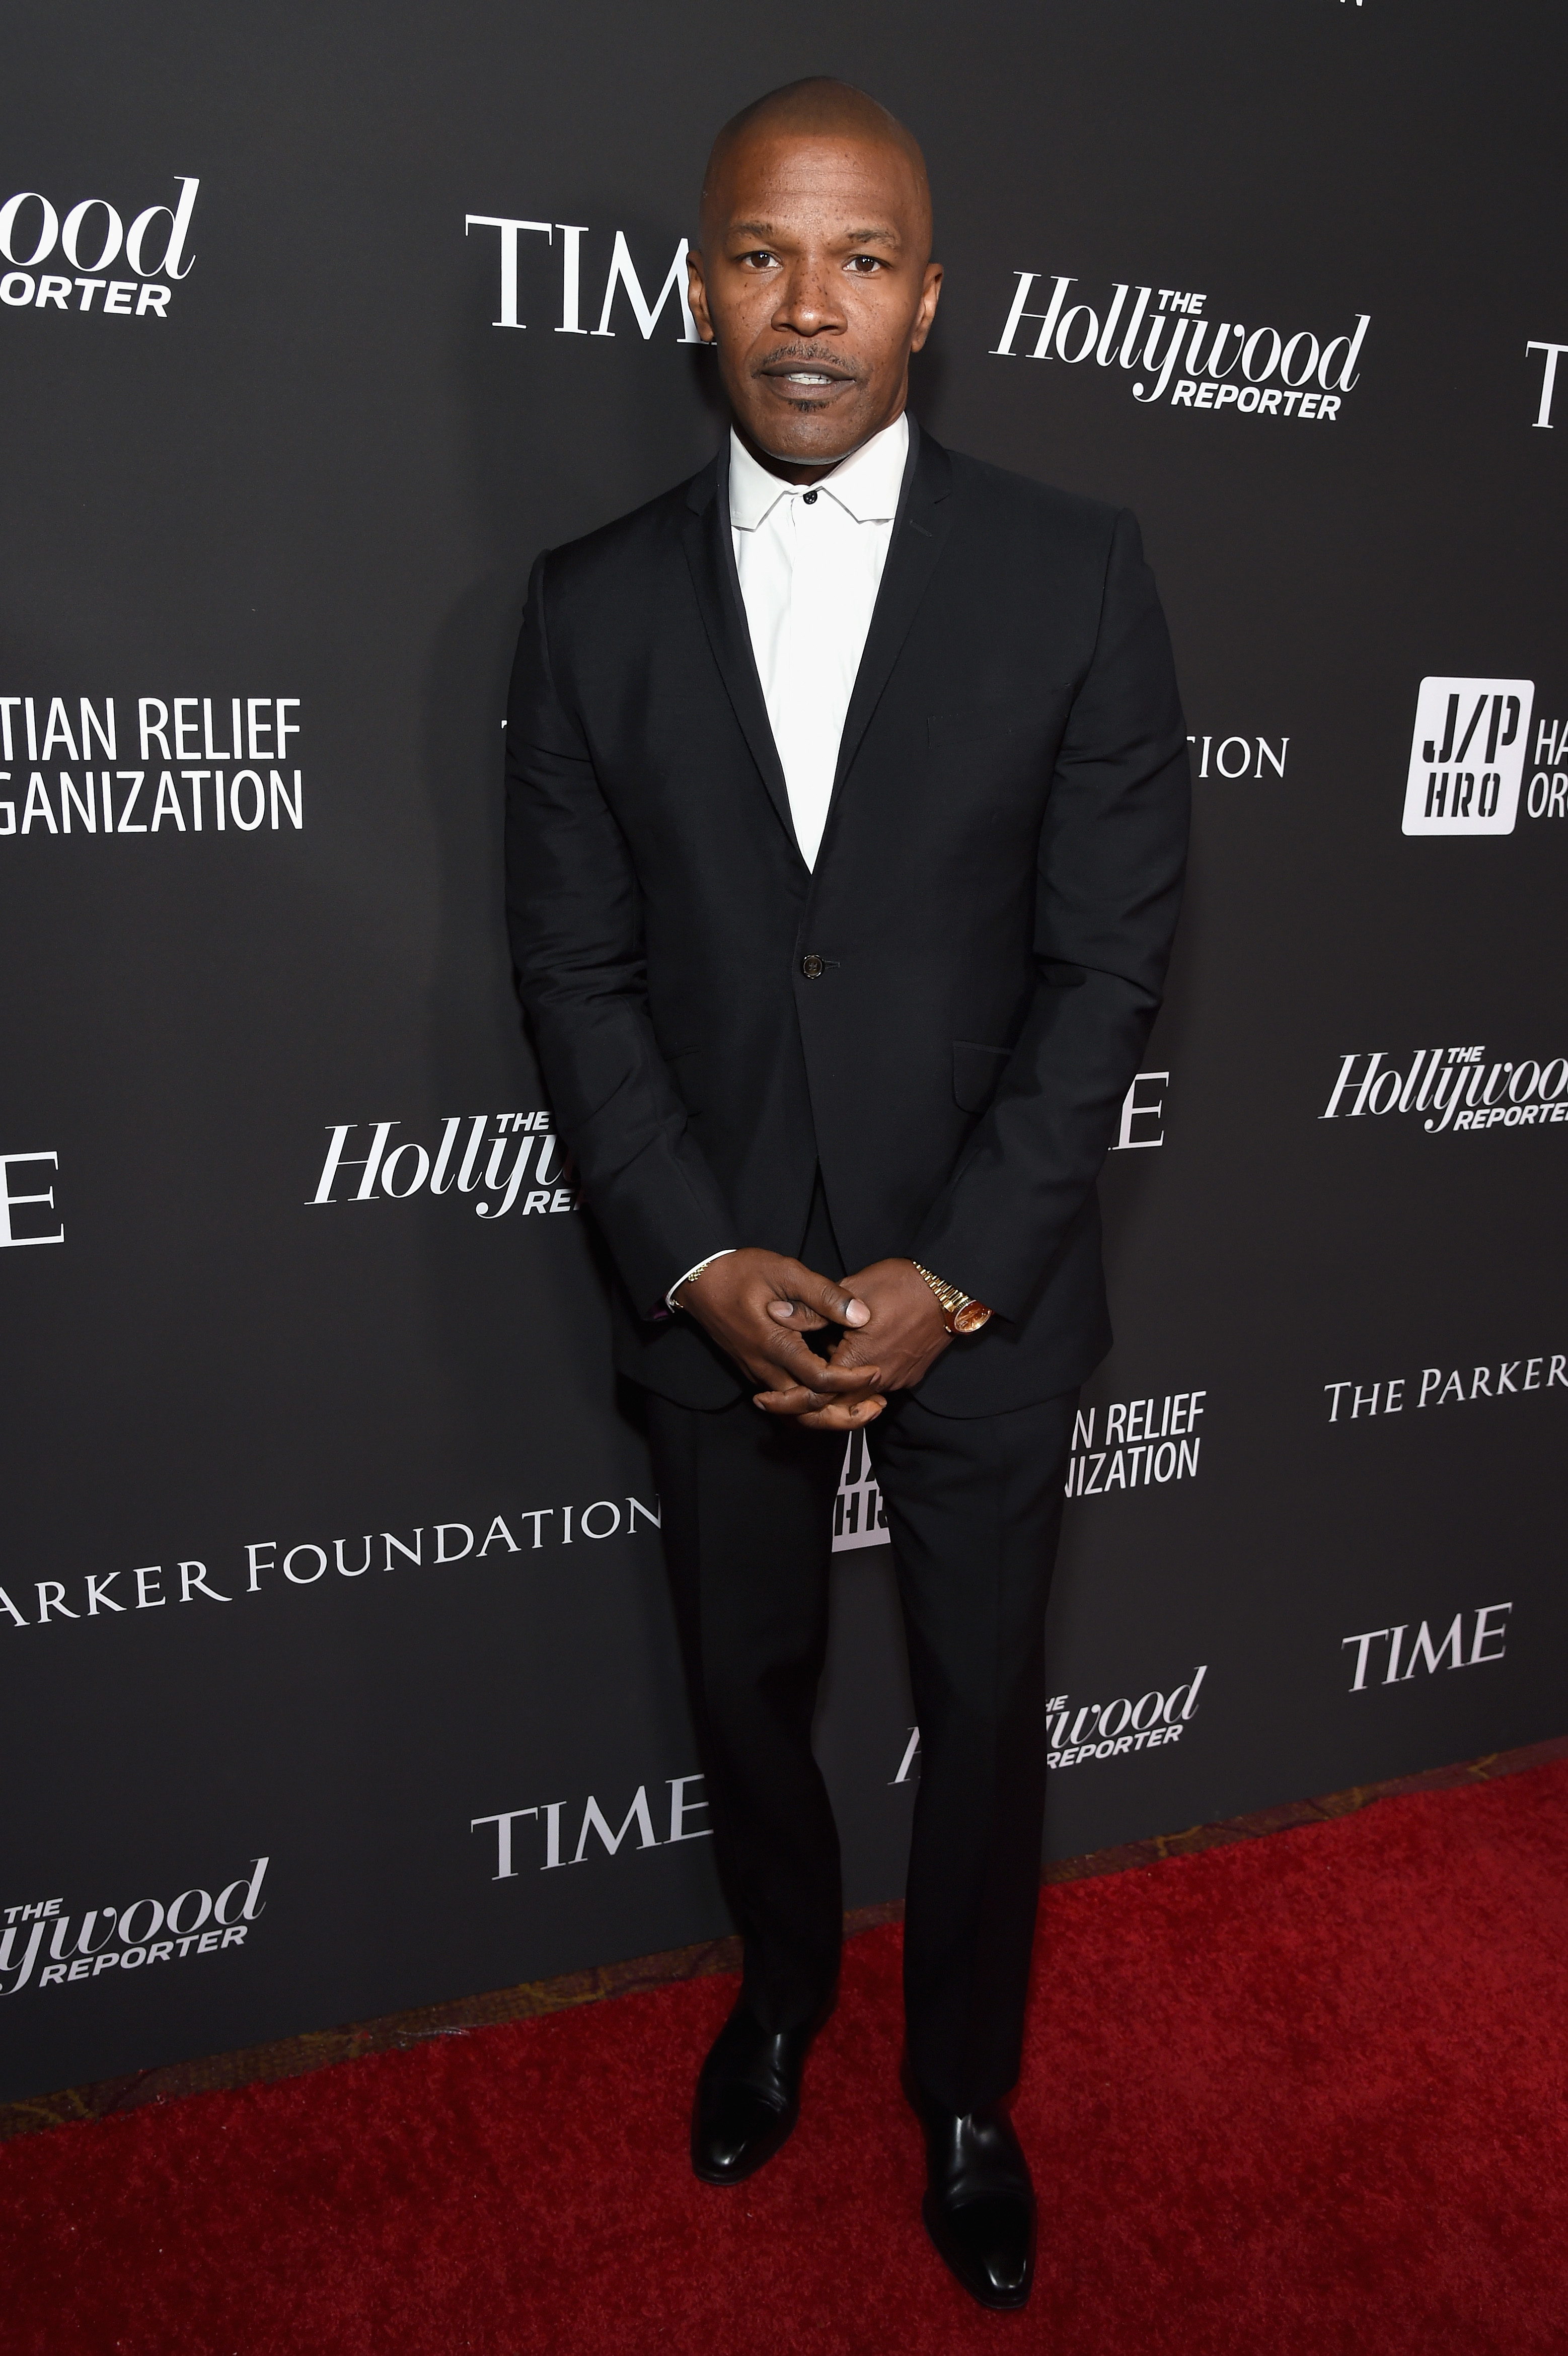 Jamie Foxx attends the Sean Penn CORE Gala benefiting the organization formerly known as J/P HRO & its life-saving work across Haiti & the world at The Wiltern on January 5, 2019 in Los Angeles, California.